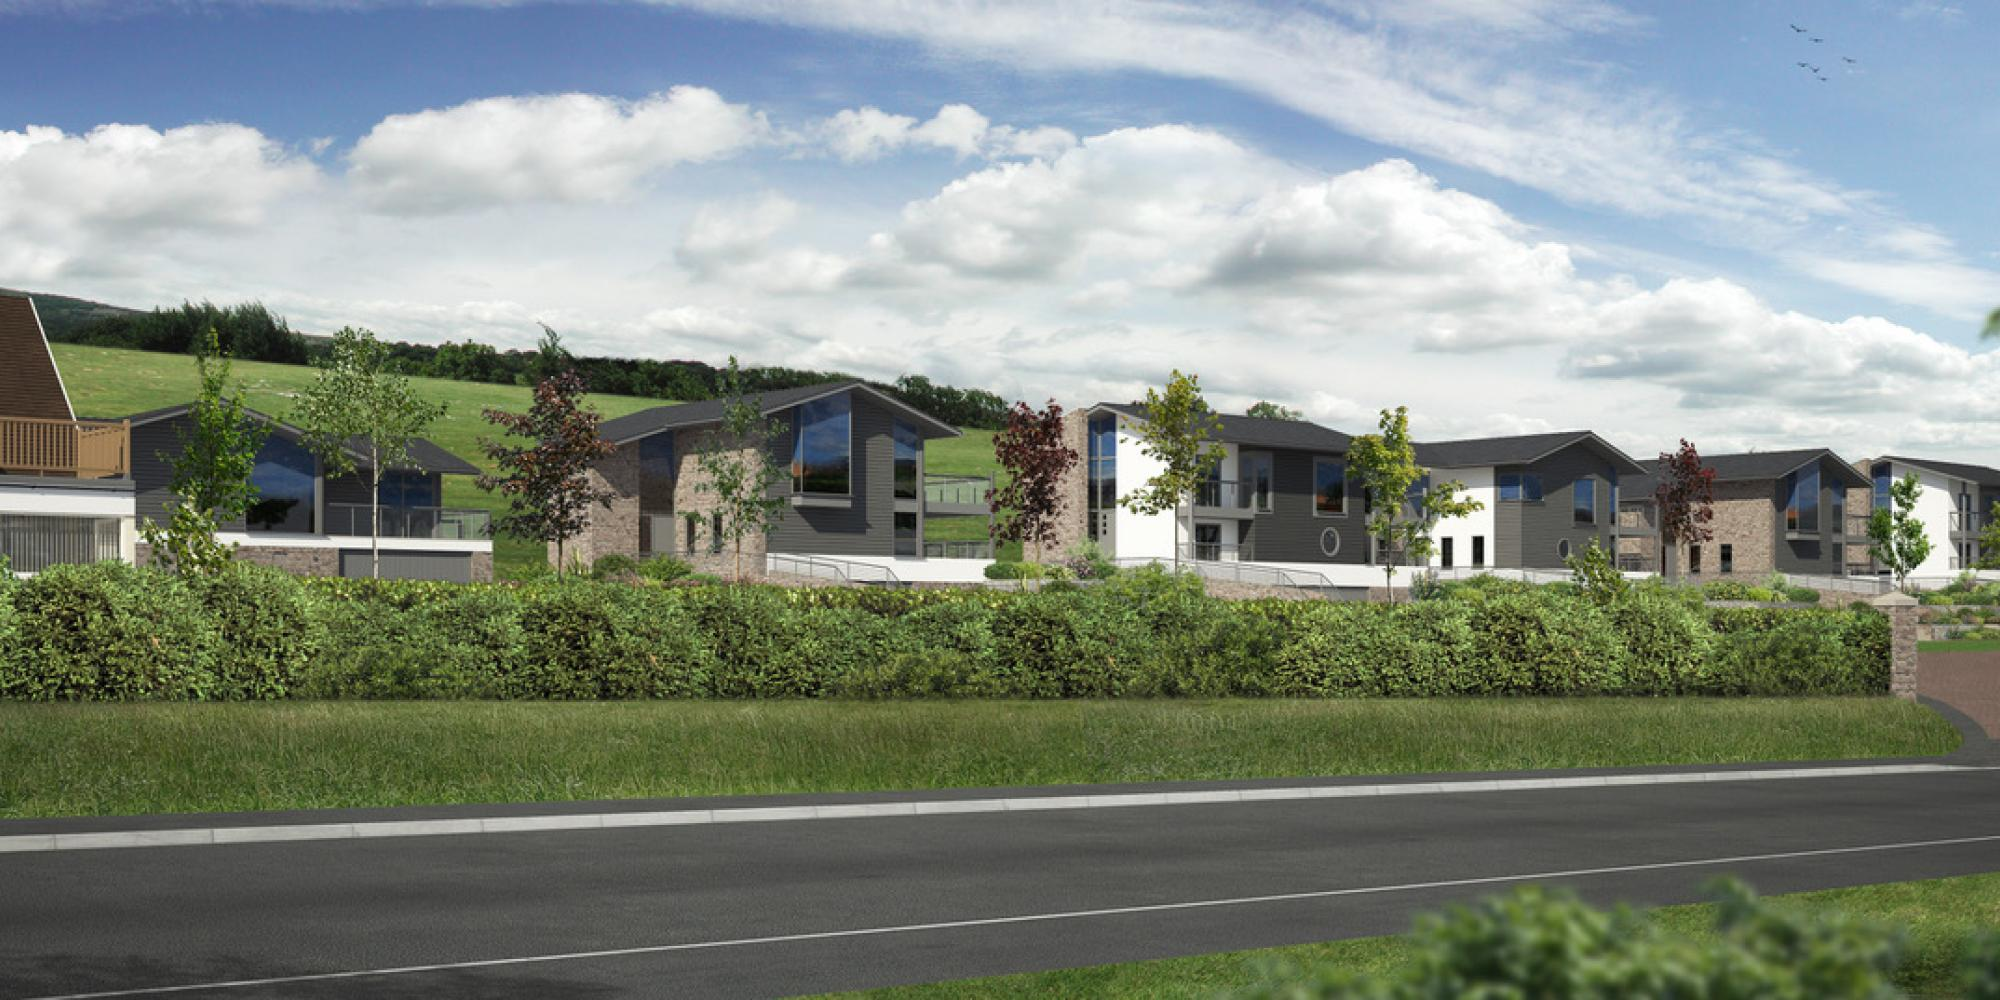 New Homes on Anstey Way, Instow, North Devon